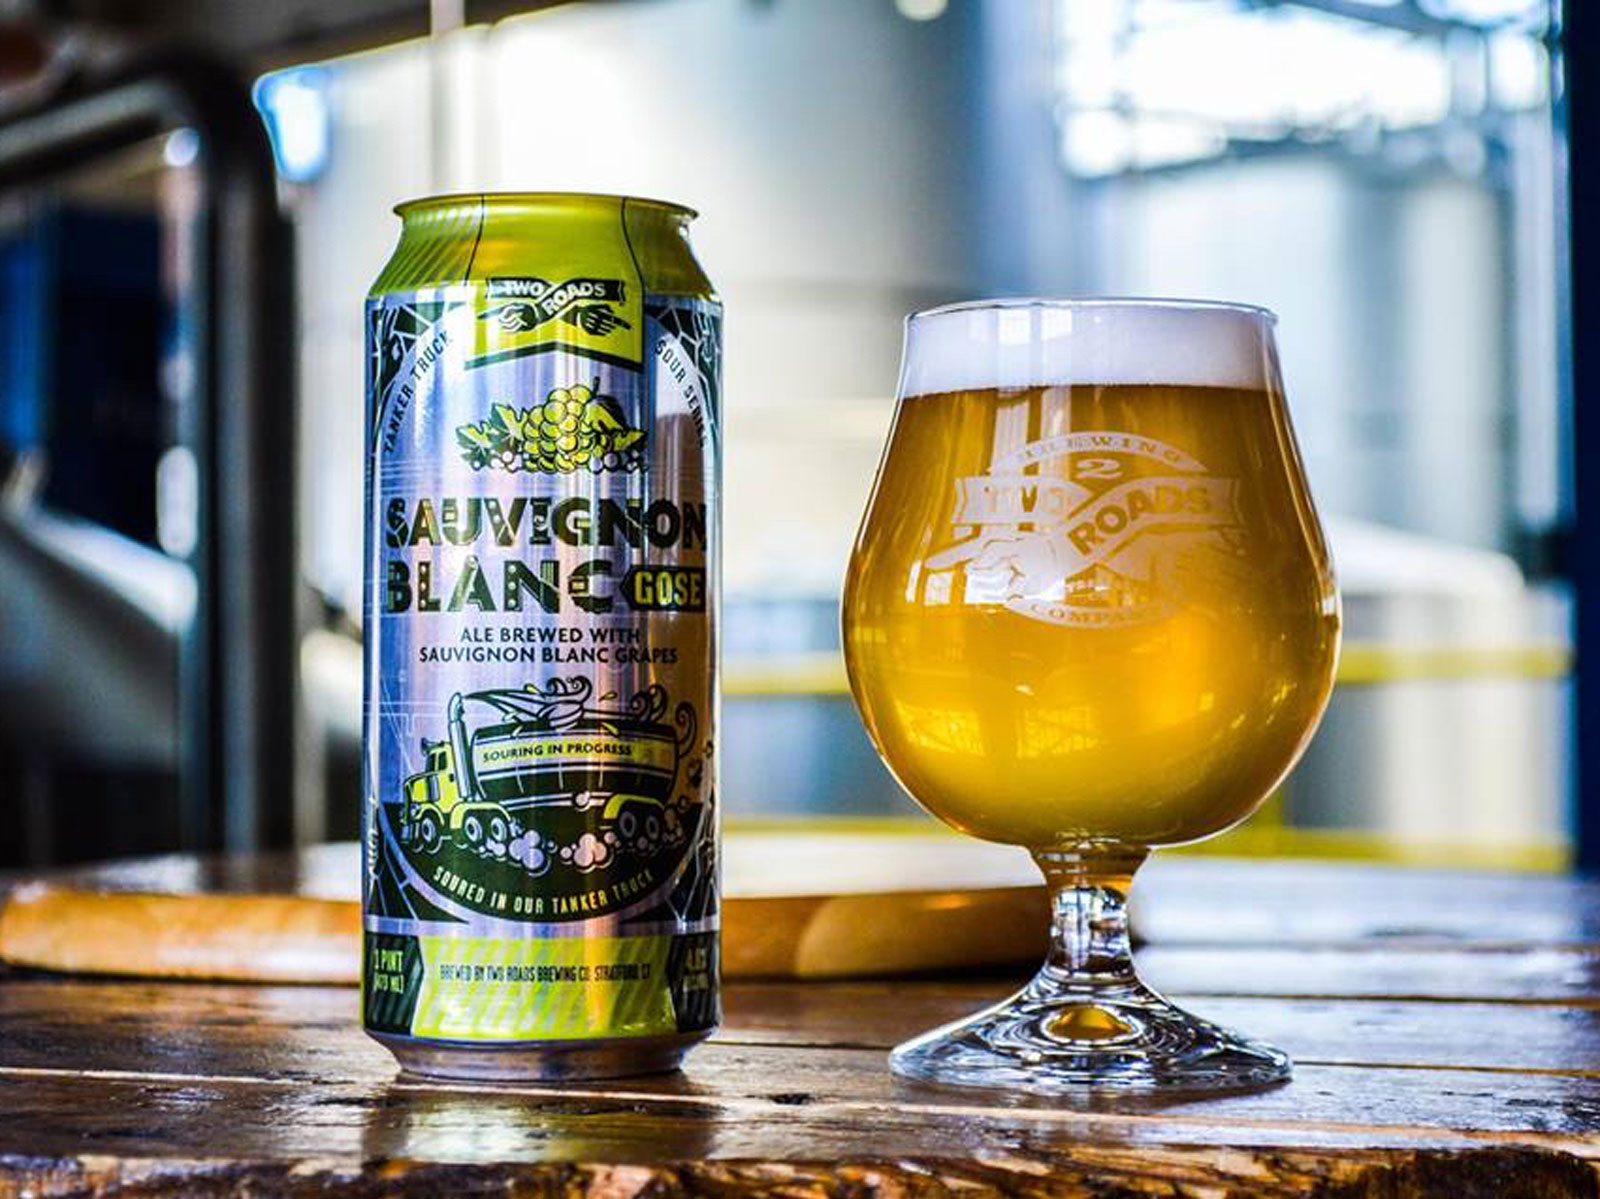 New Sauvignon Blanc Gose Combines Two Signature Summer Drinks